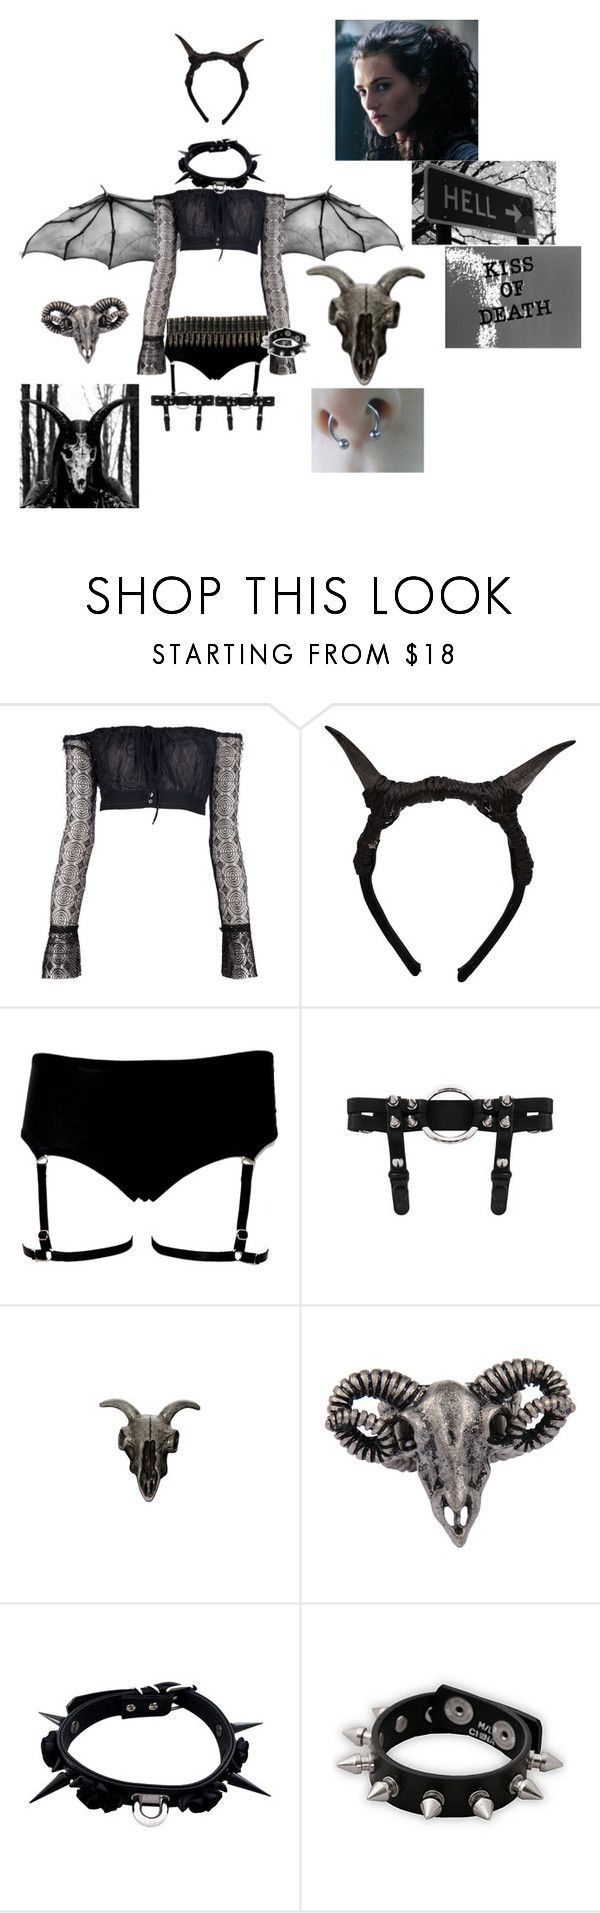 """lucifer girl got the the evil look"" by monsterhex ❤ liked on Polyvore featuring Romeo Gigli, FAUXTALE, AllSaints, Style Tryst and Hot Topic"